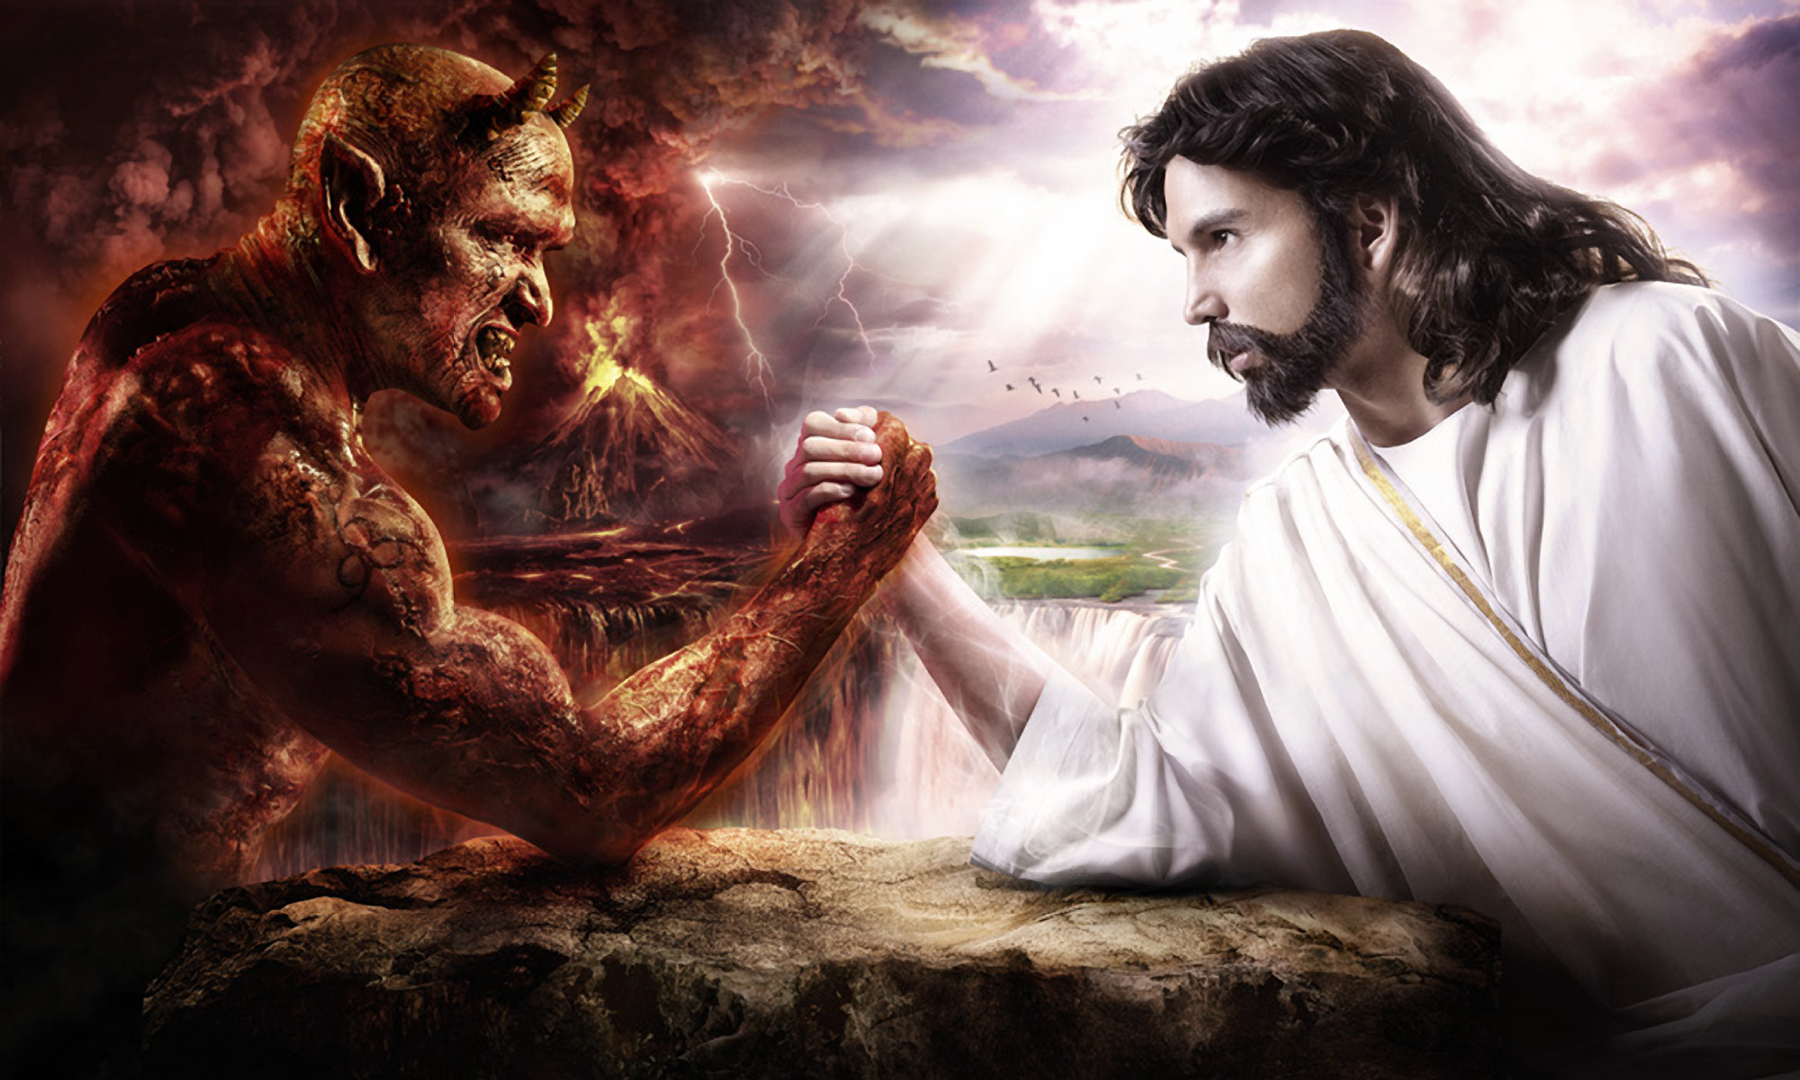 Jesus Vs Satan Arm Wrestling wallpaper